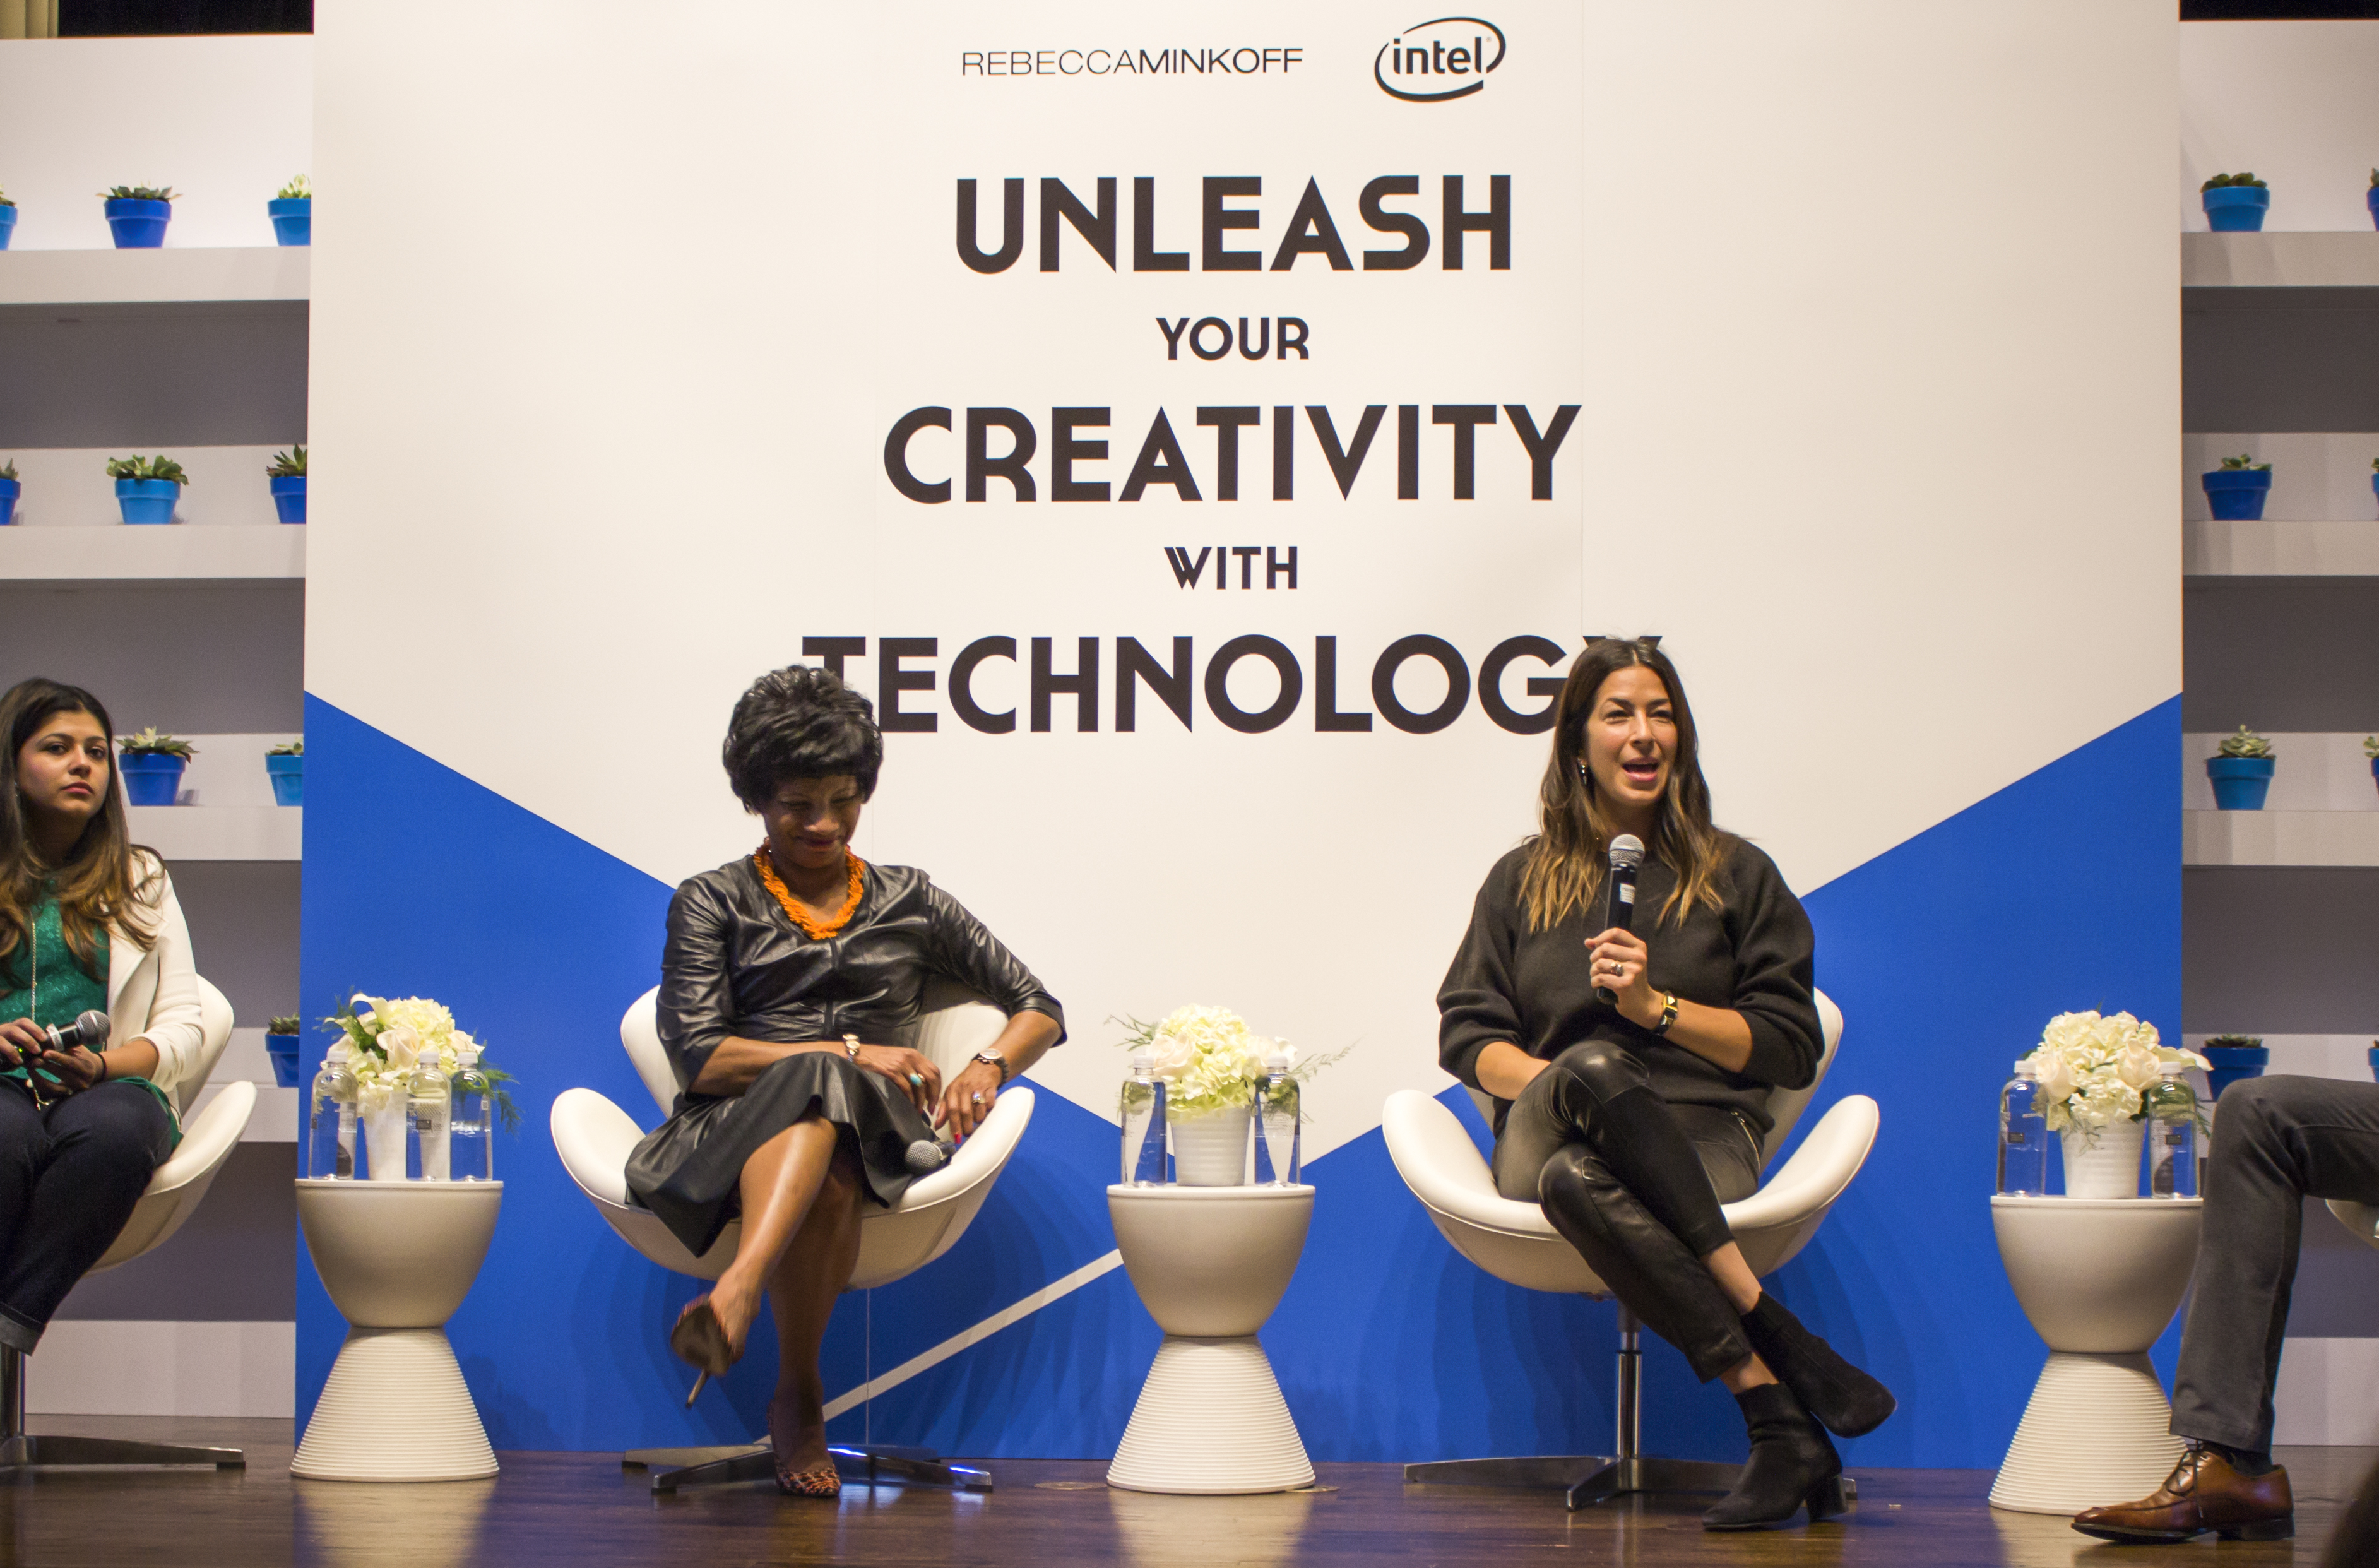 Fashion and Technology Unite to Empower Women